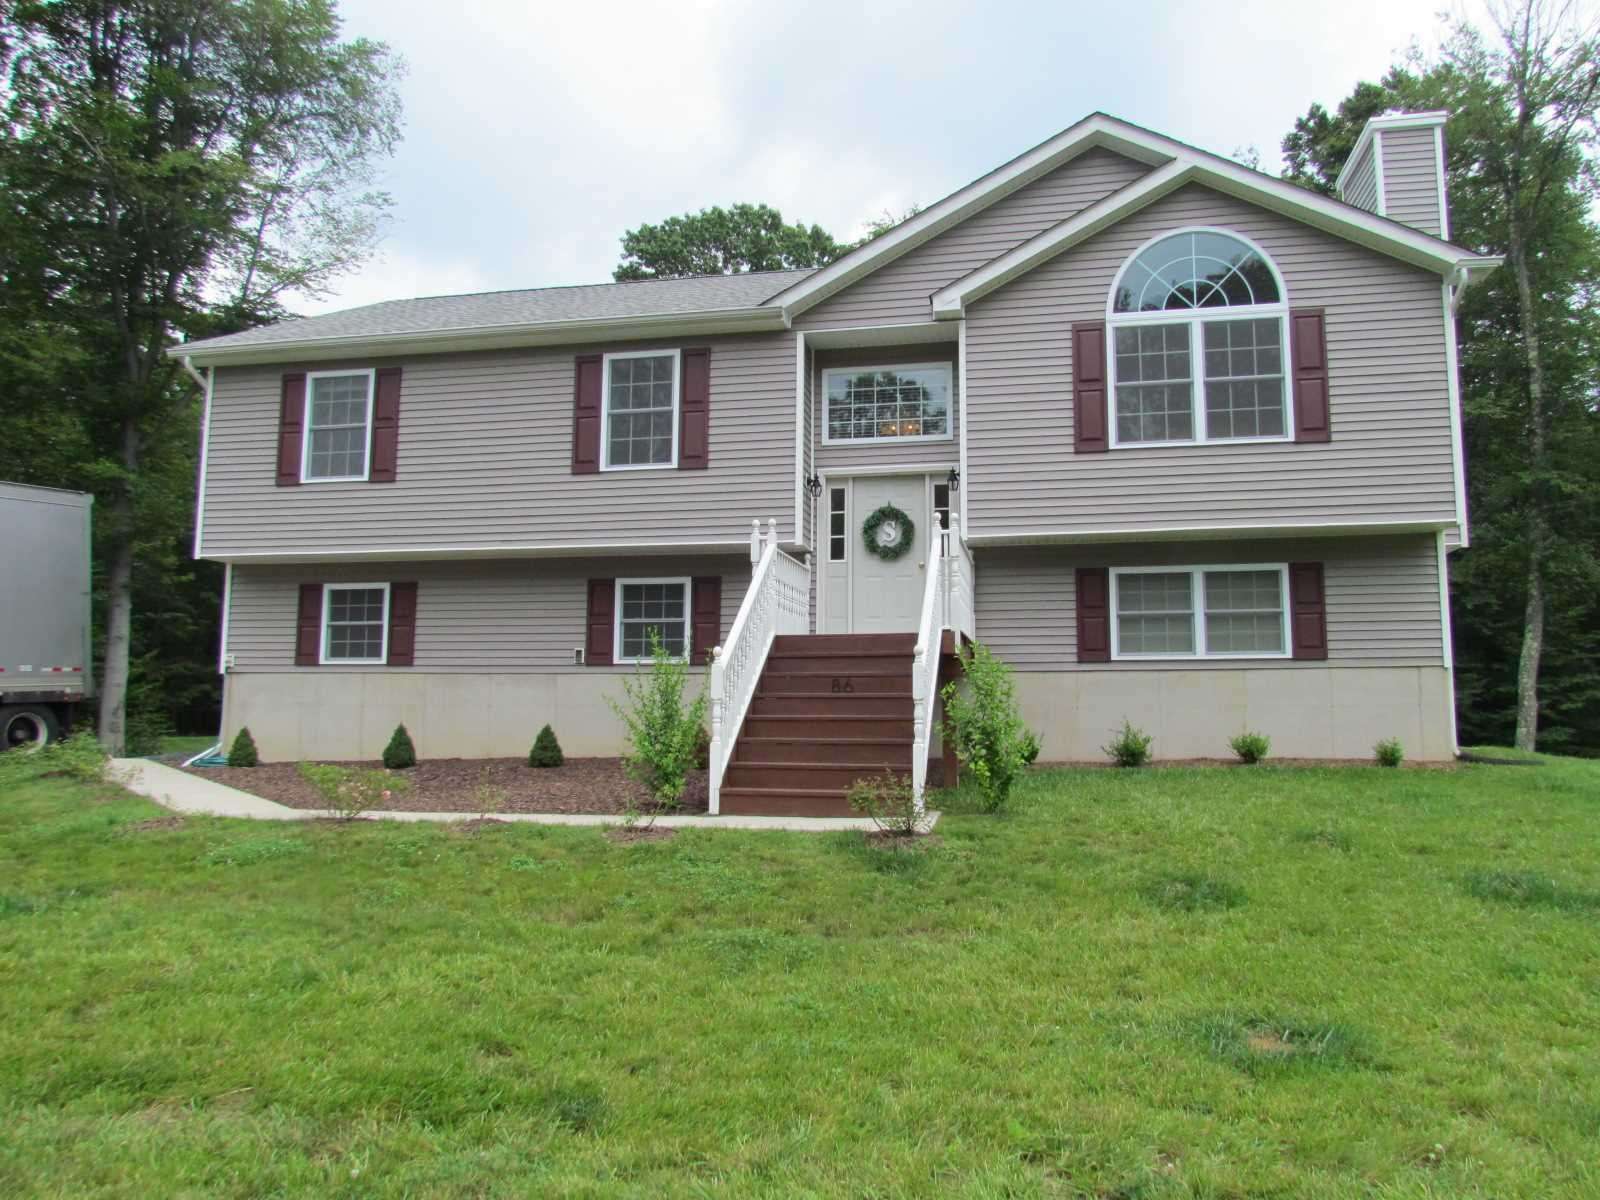 Single Family Home for Sale at 86 GLEN ROCK Circle 86 GLEN ROCK Circle Highland, New York 12528 United States